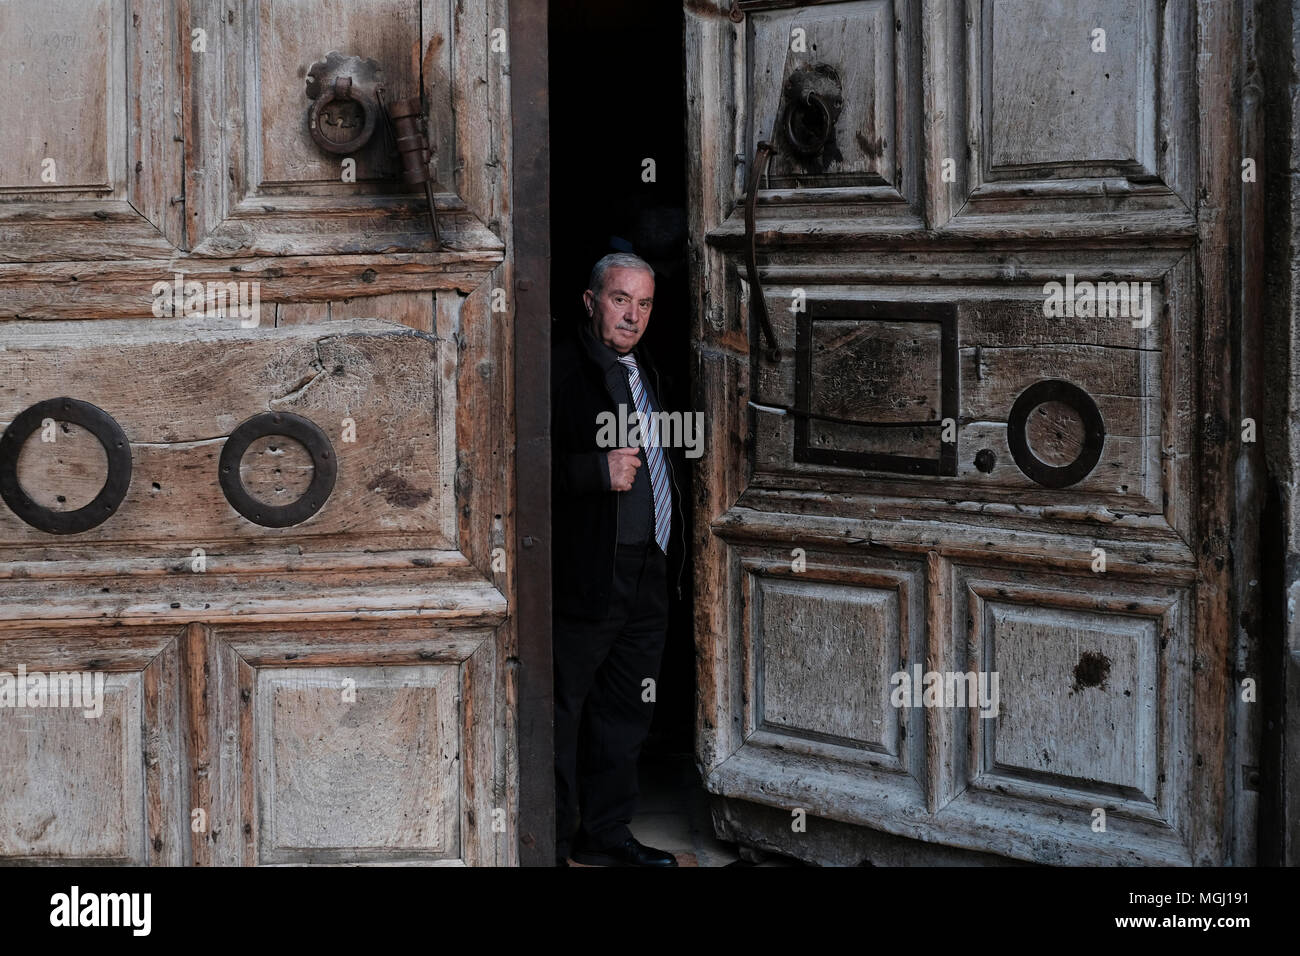 Wajeeh Nuseibeh, a Muslim whose family has opened and closed the Holy Sepulcher since the Ottoman era closing the doors of the church of Holy sepulchre in old city East Jerusalem Israel. The custody of the door and the key for the Church of the Holy Sepulchre is entrusted to two Muslim families (Nuseibeh and Judeh) and it has been like this for centuries. - Stock Image